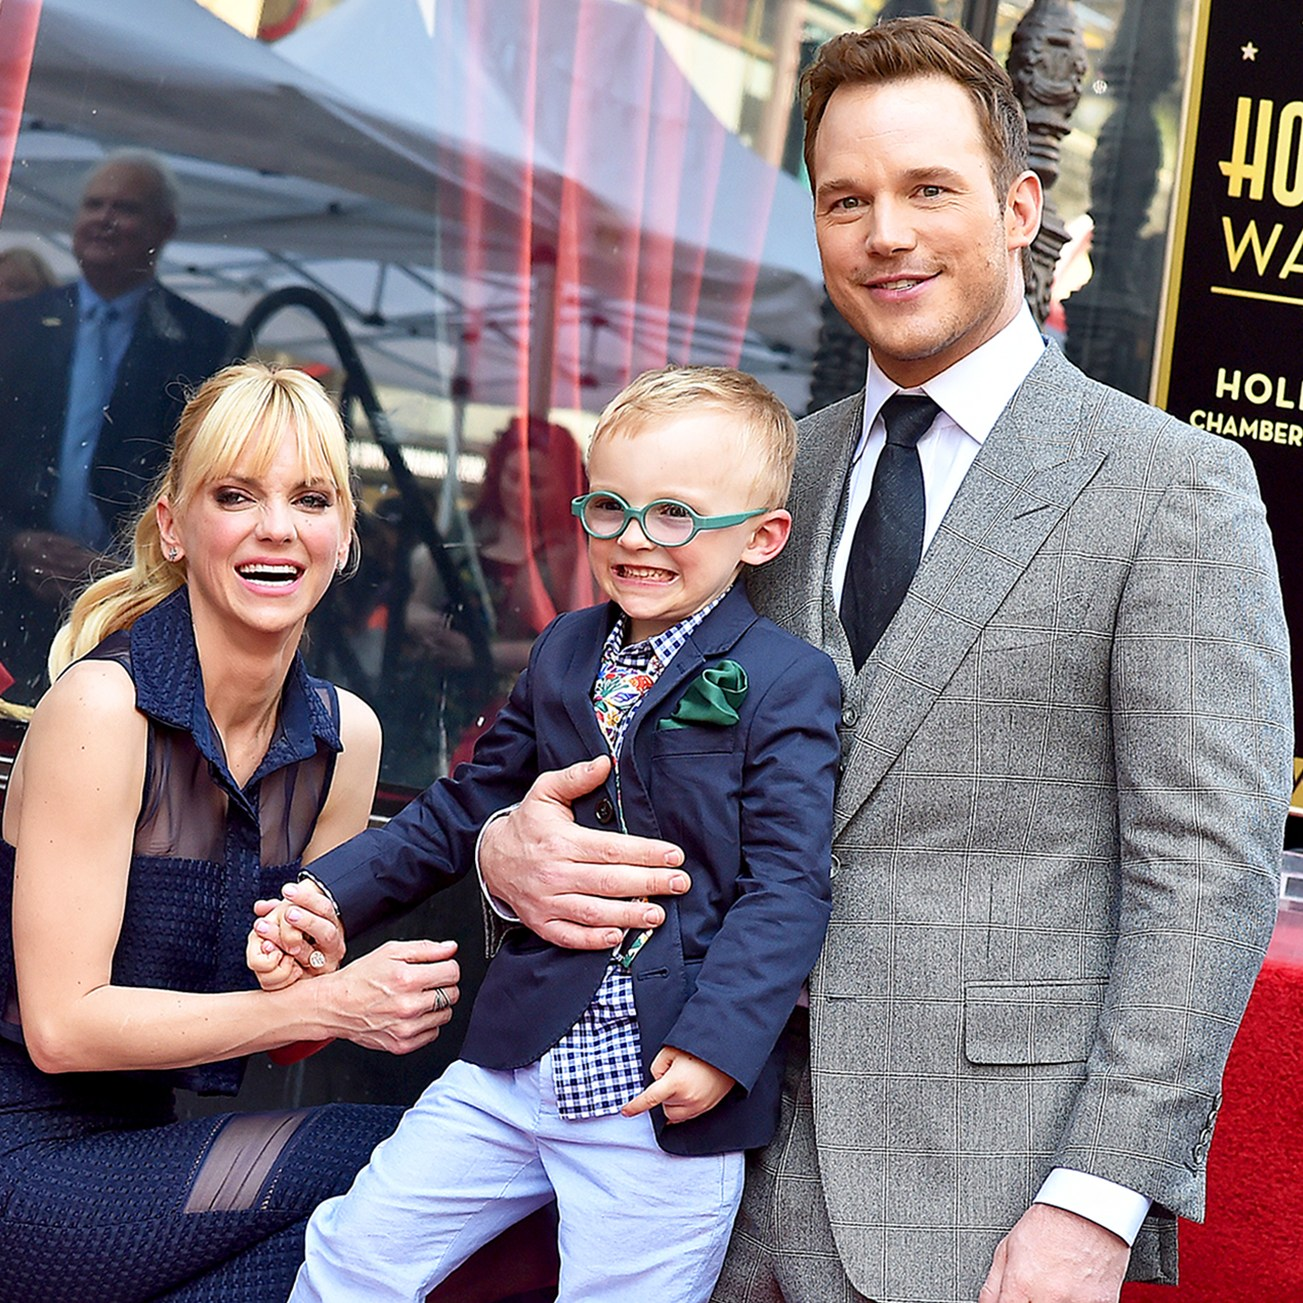 Anna Faris, Chris Pratt and their son Jack attend the ceremony honoring Chris Pratt with a star on the Hollywood Walk of Fame on April 21, 2017 in Hollywood, California.